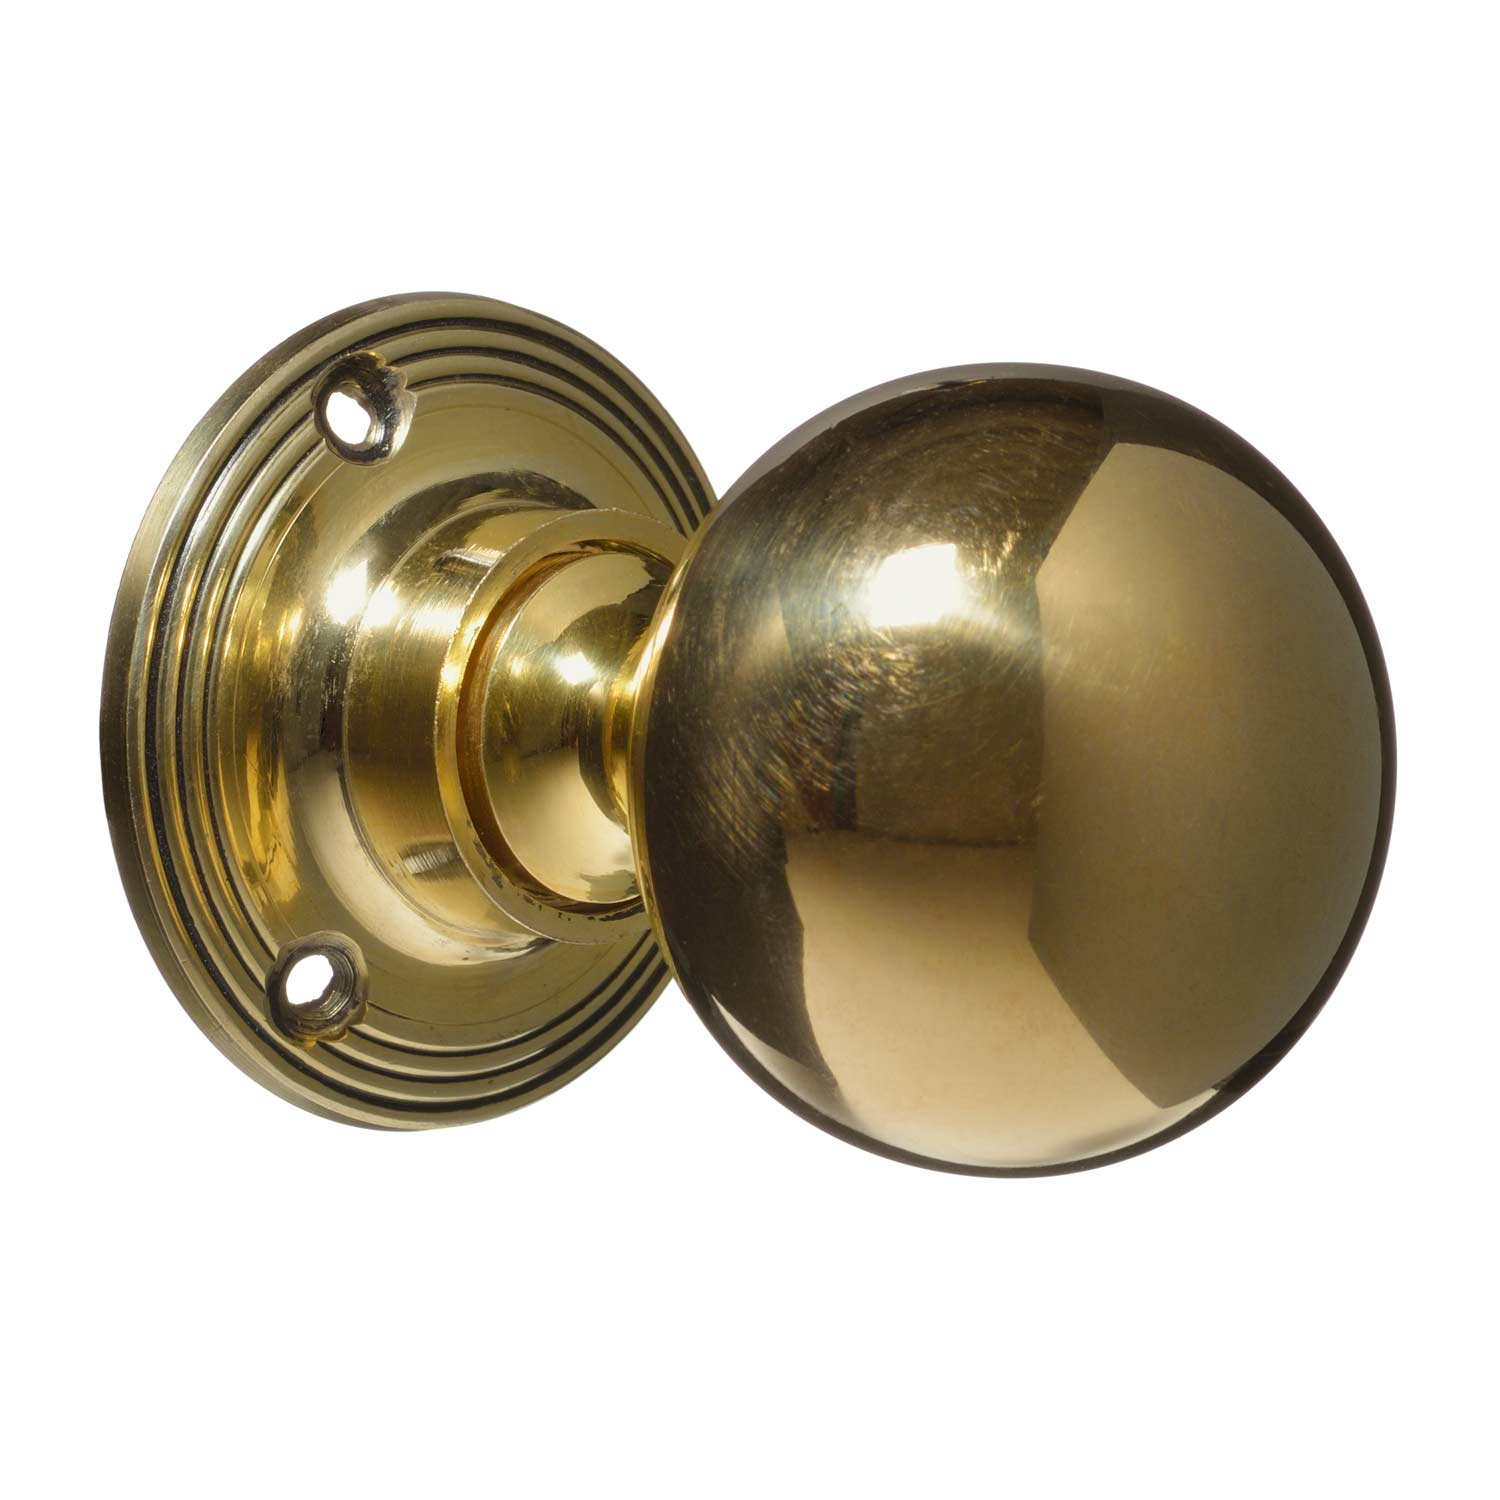 Victorian Door Handles Brass Plain Pair